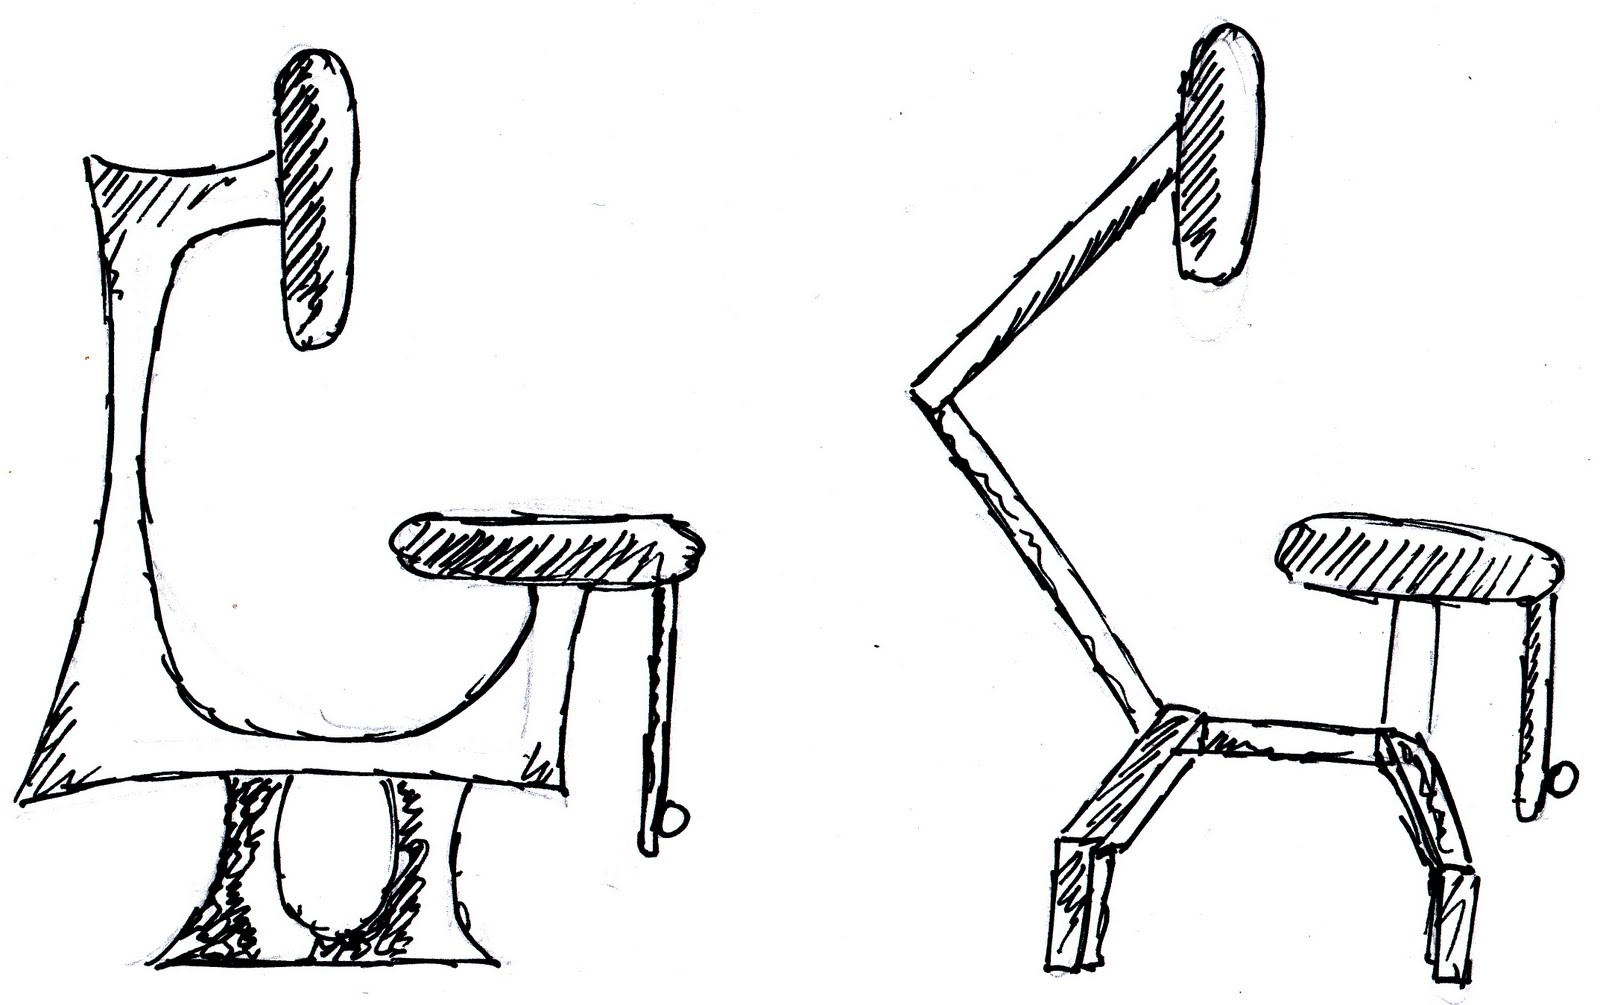 Guitar practice chair - Okay So No New Design Work Today Instead Here Are Some Development Drawings Of My As Dt Project A Guitar Practice Chair